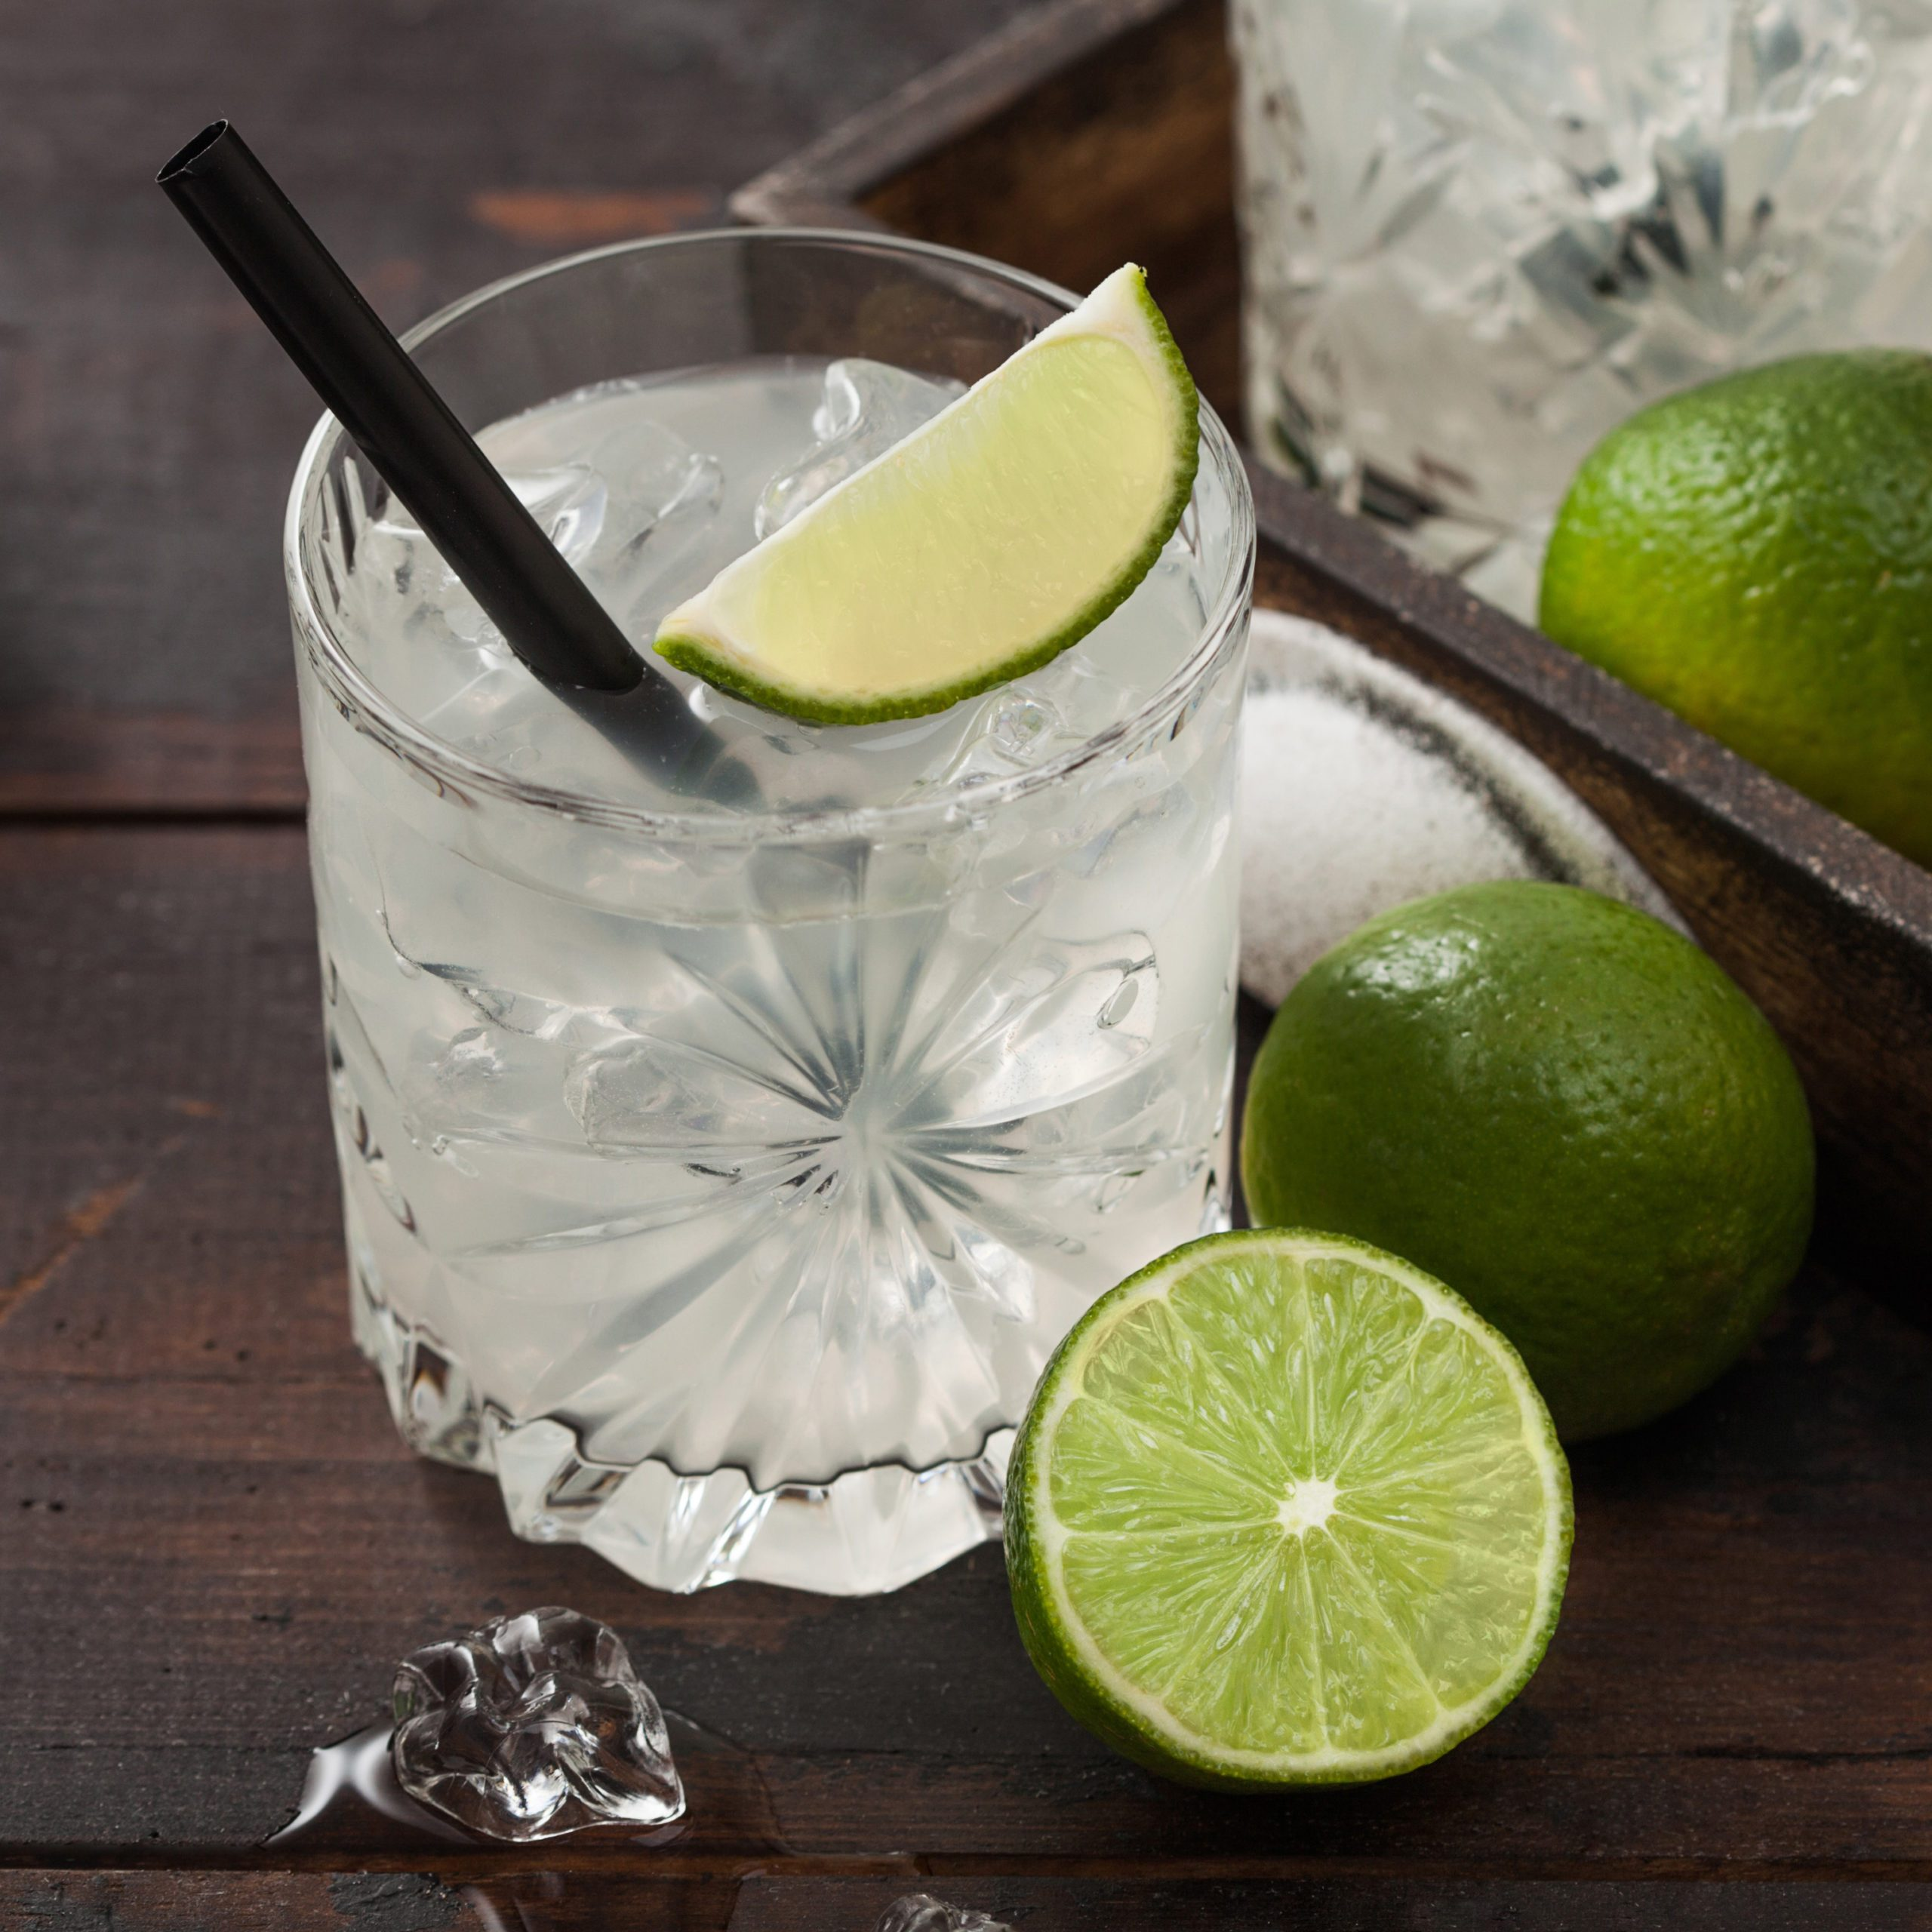 Gimlet Kamikaze Cocktail In Crystal Glasses With Lime Slice And Ice On Wooden Board With Fresh Limes And Jigger With Strainer.